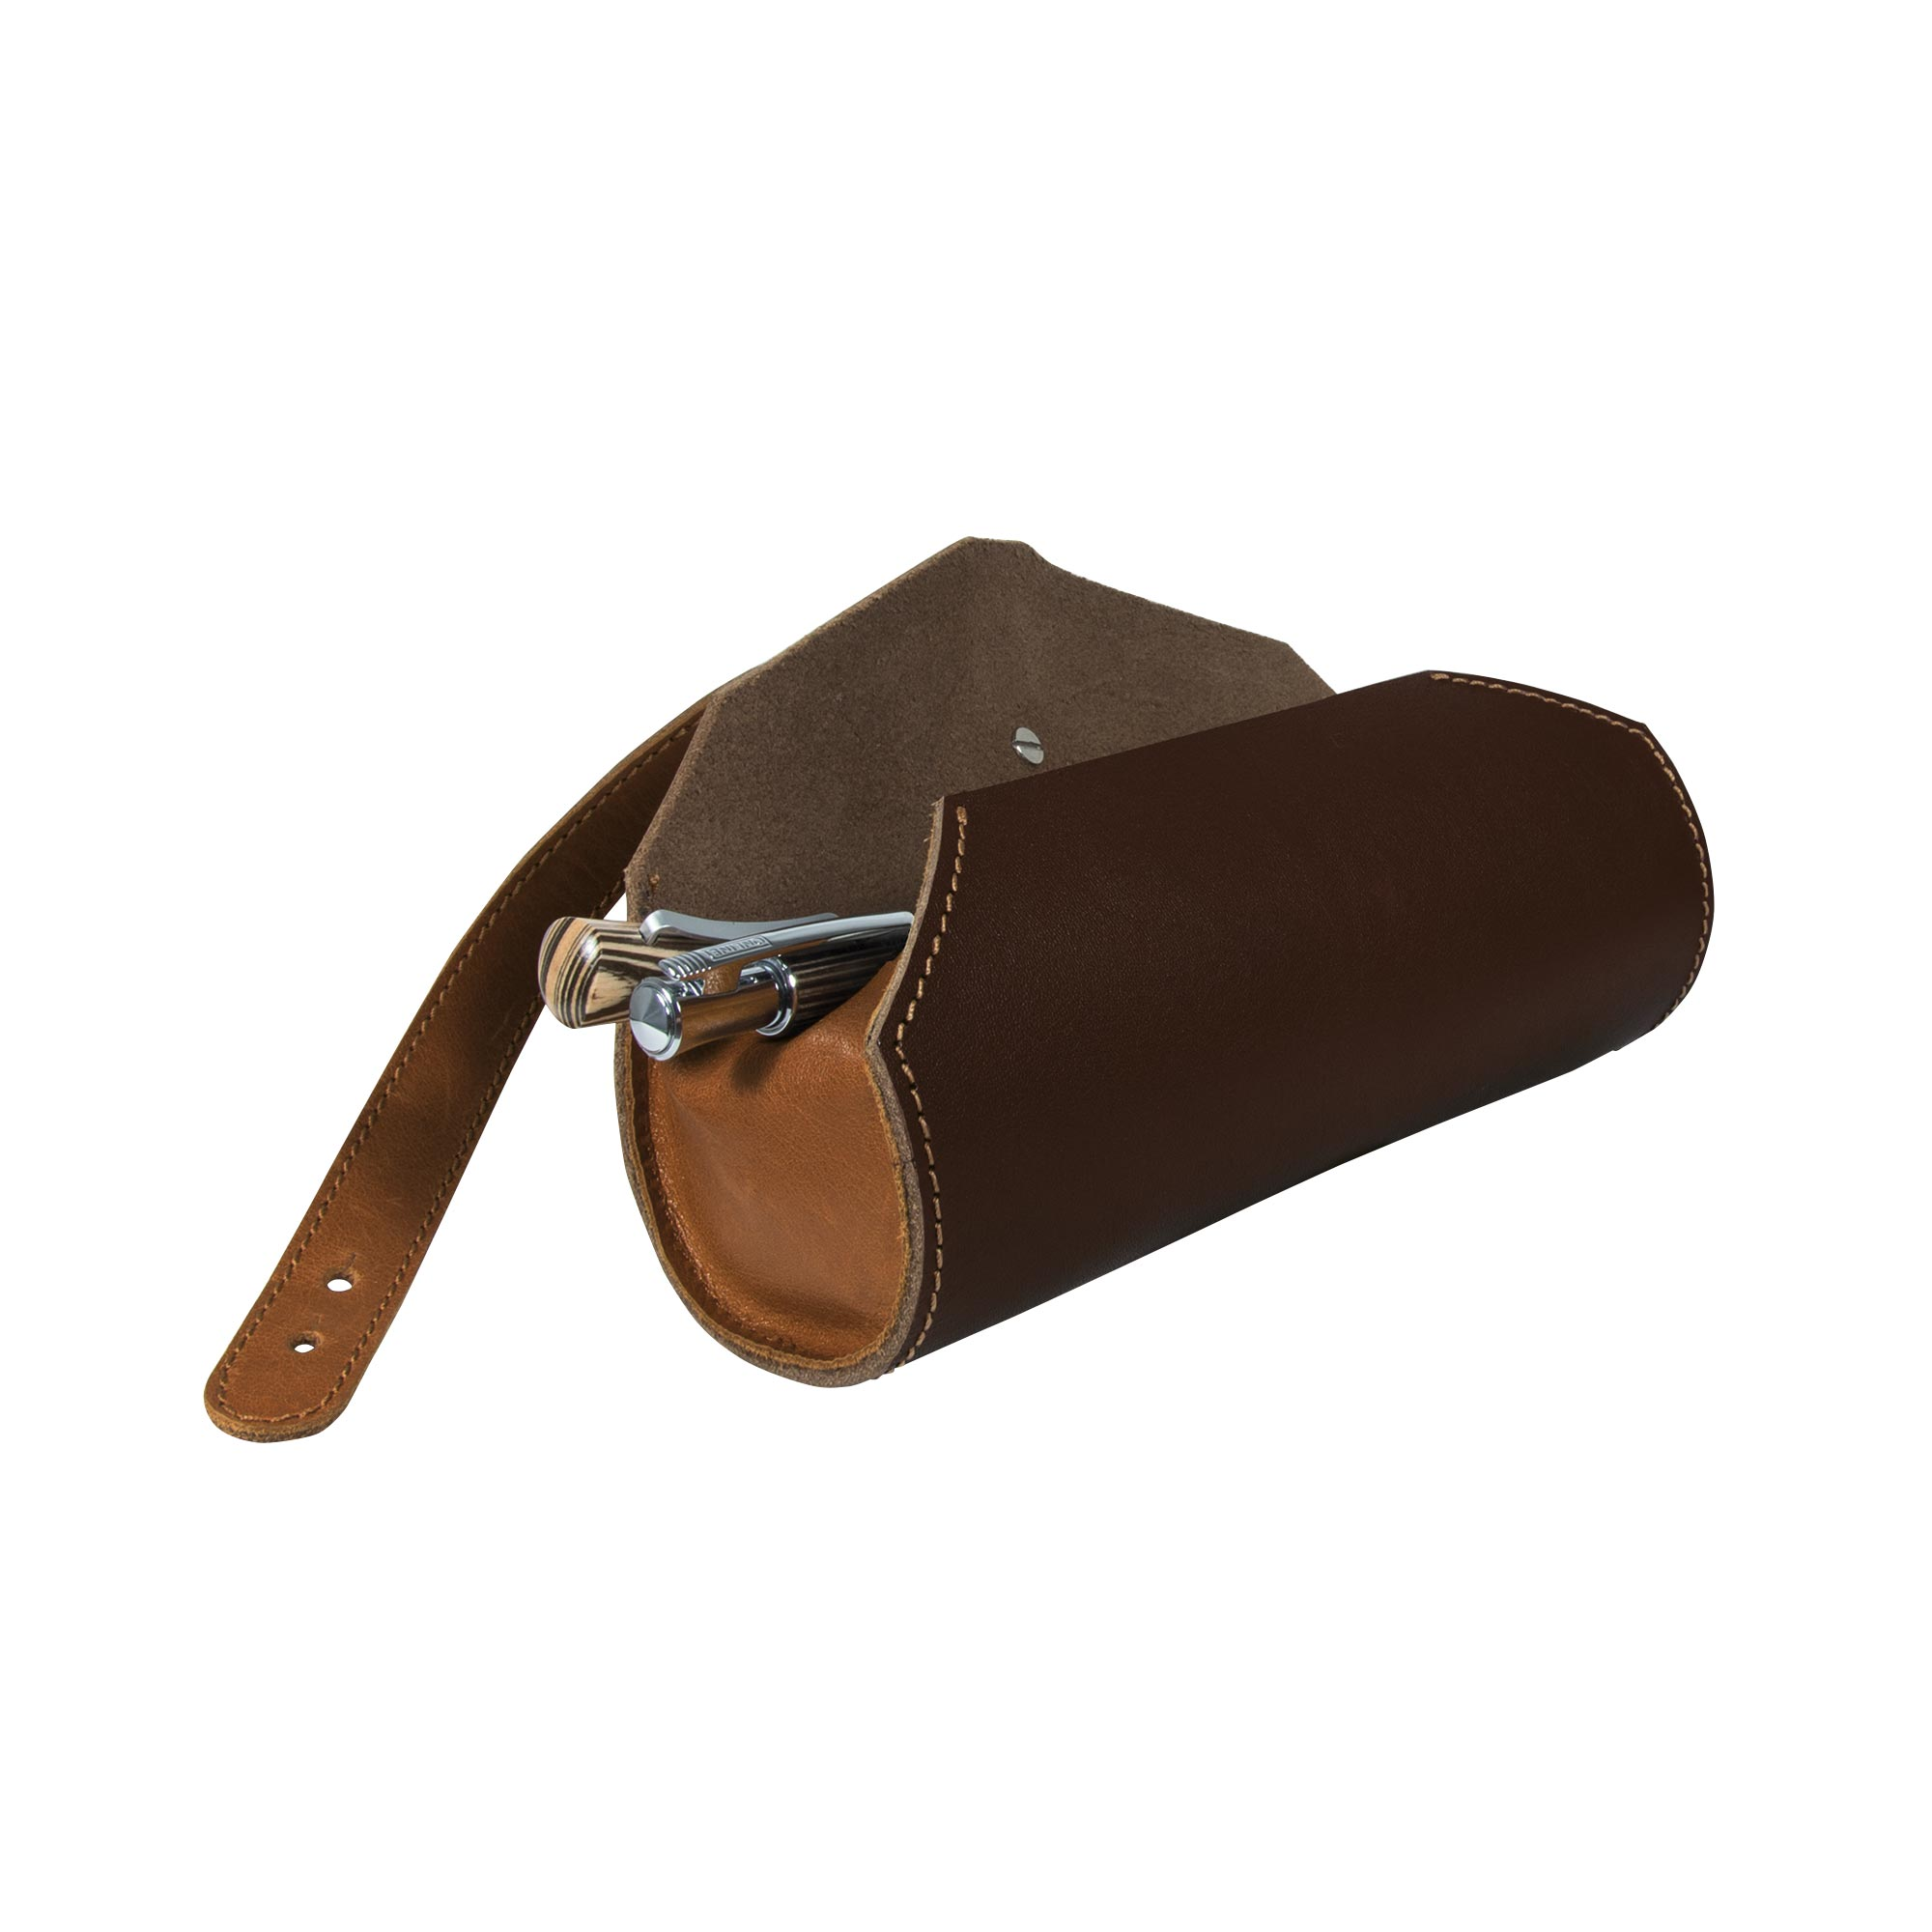 Stifterolle - Leather Pen Roll Pouch